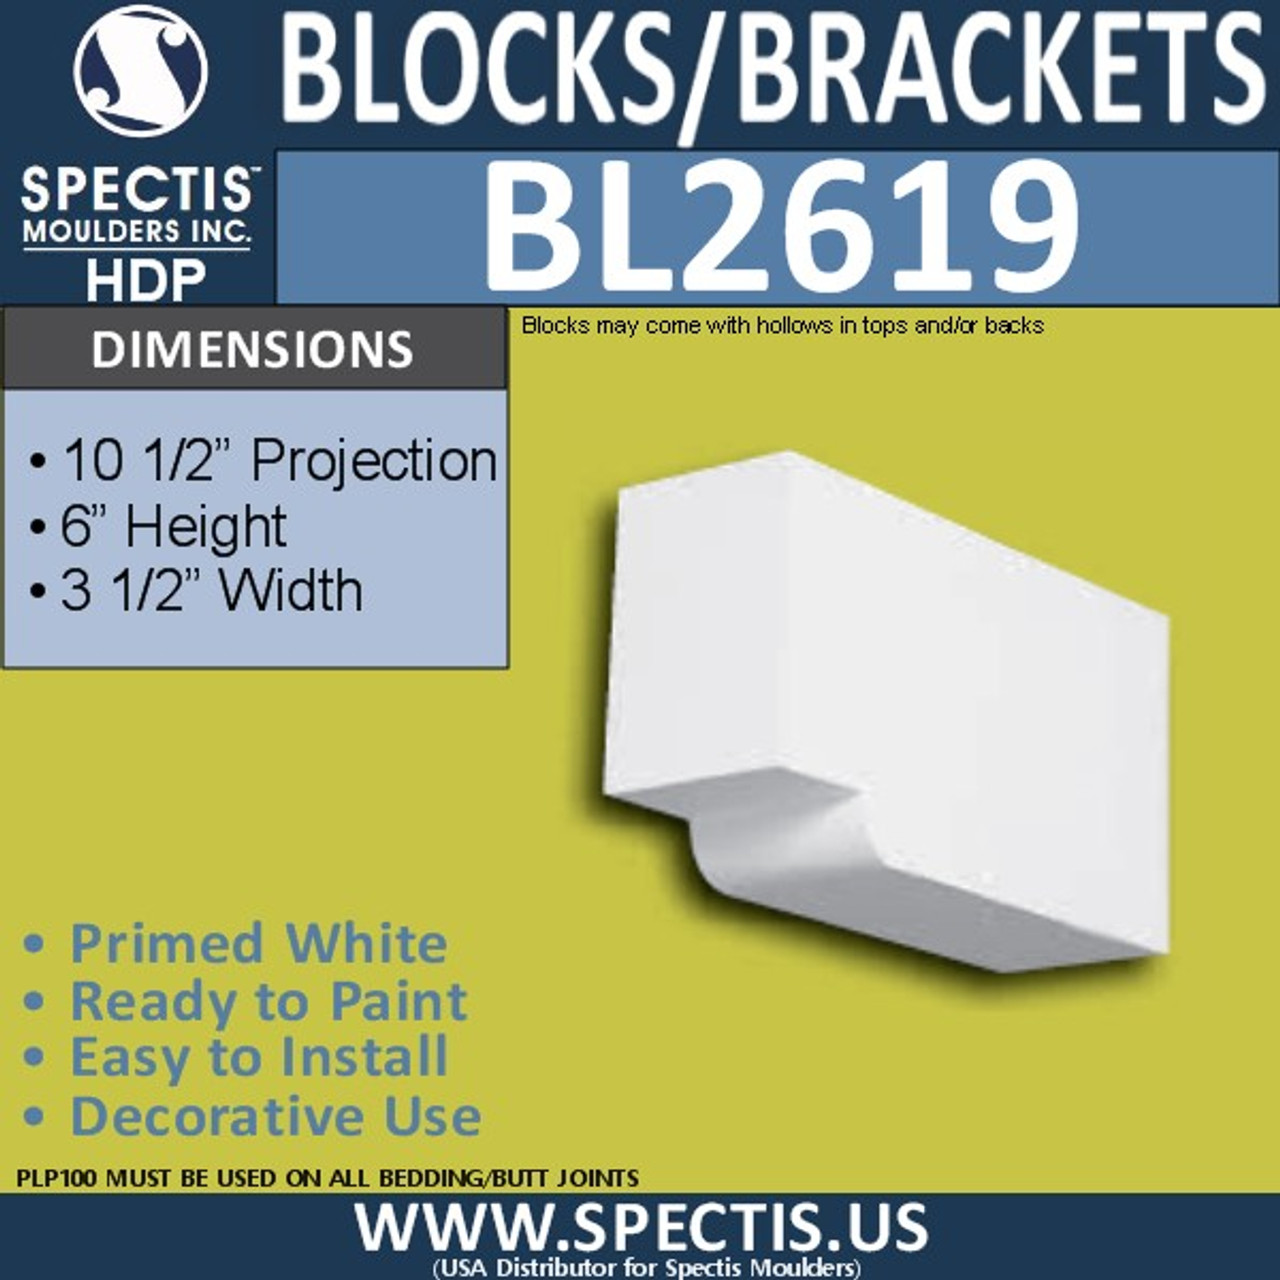 "BL2619 Eave Block or Bracket 3.5""W x 6""H x 10.5"" P"